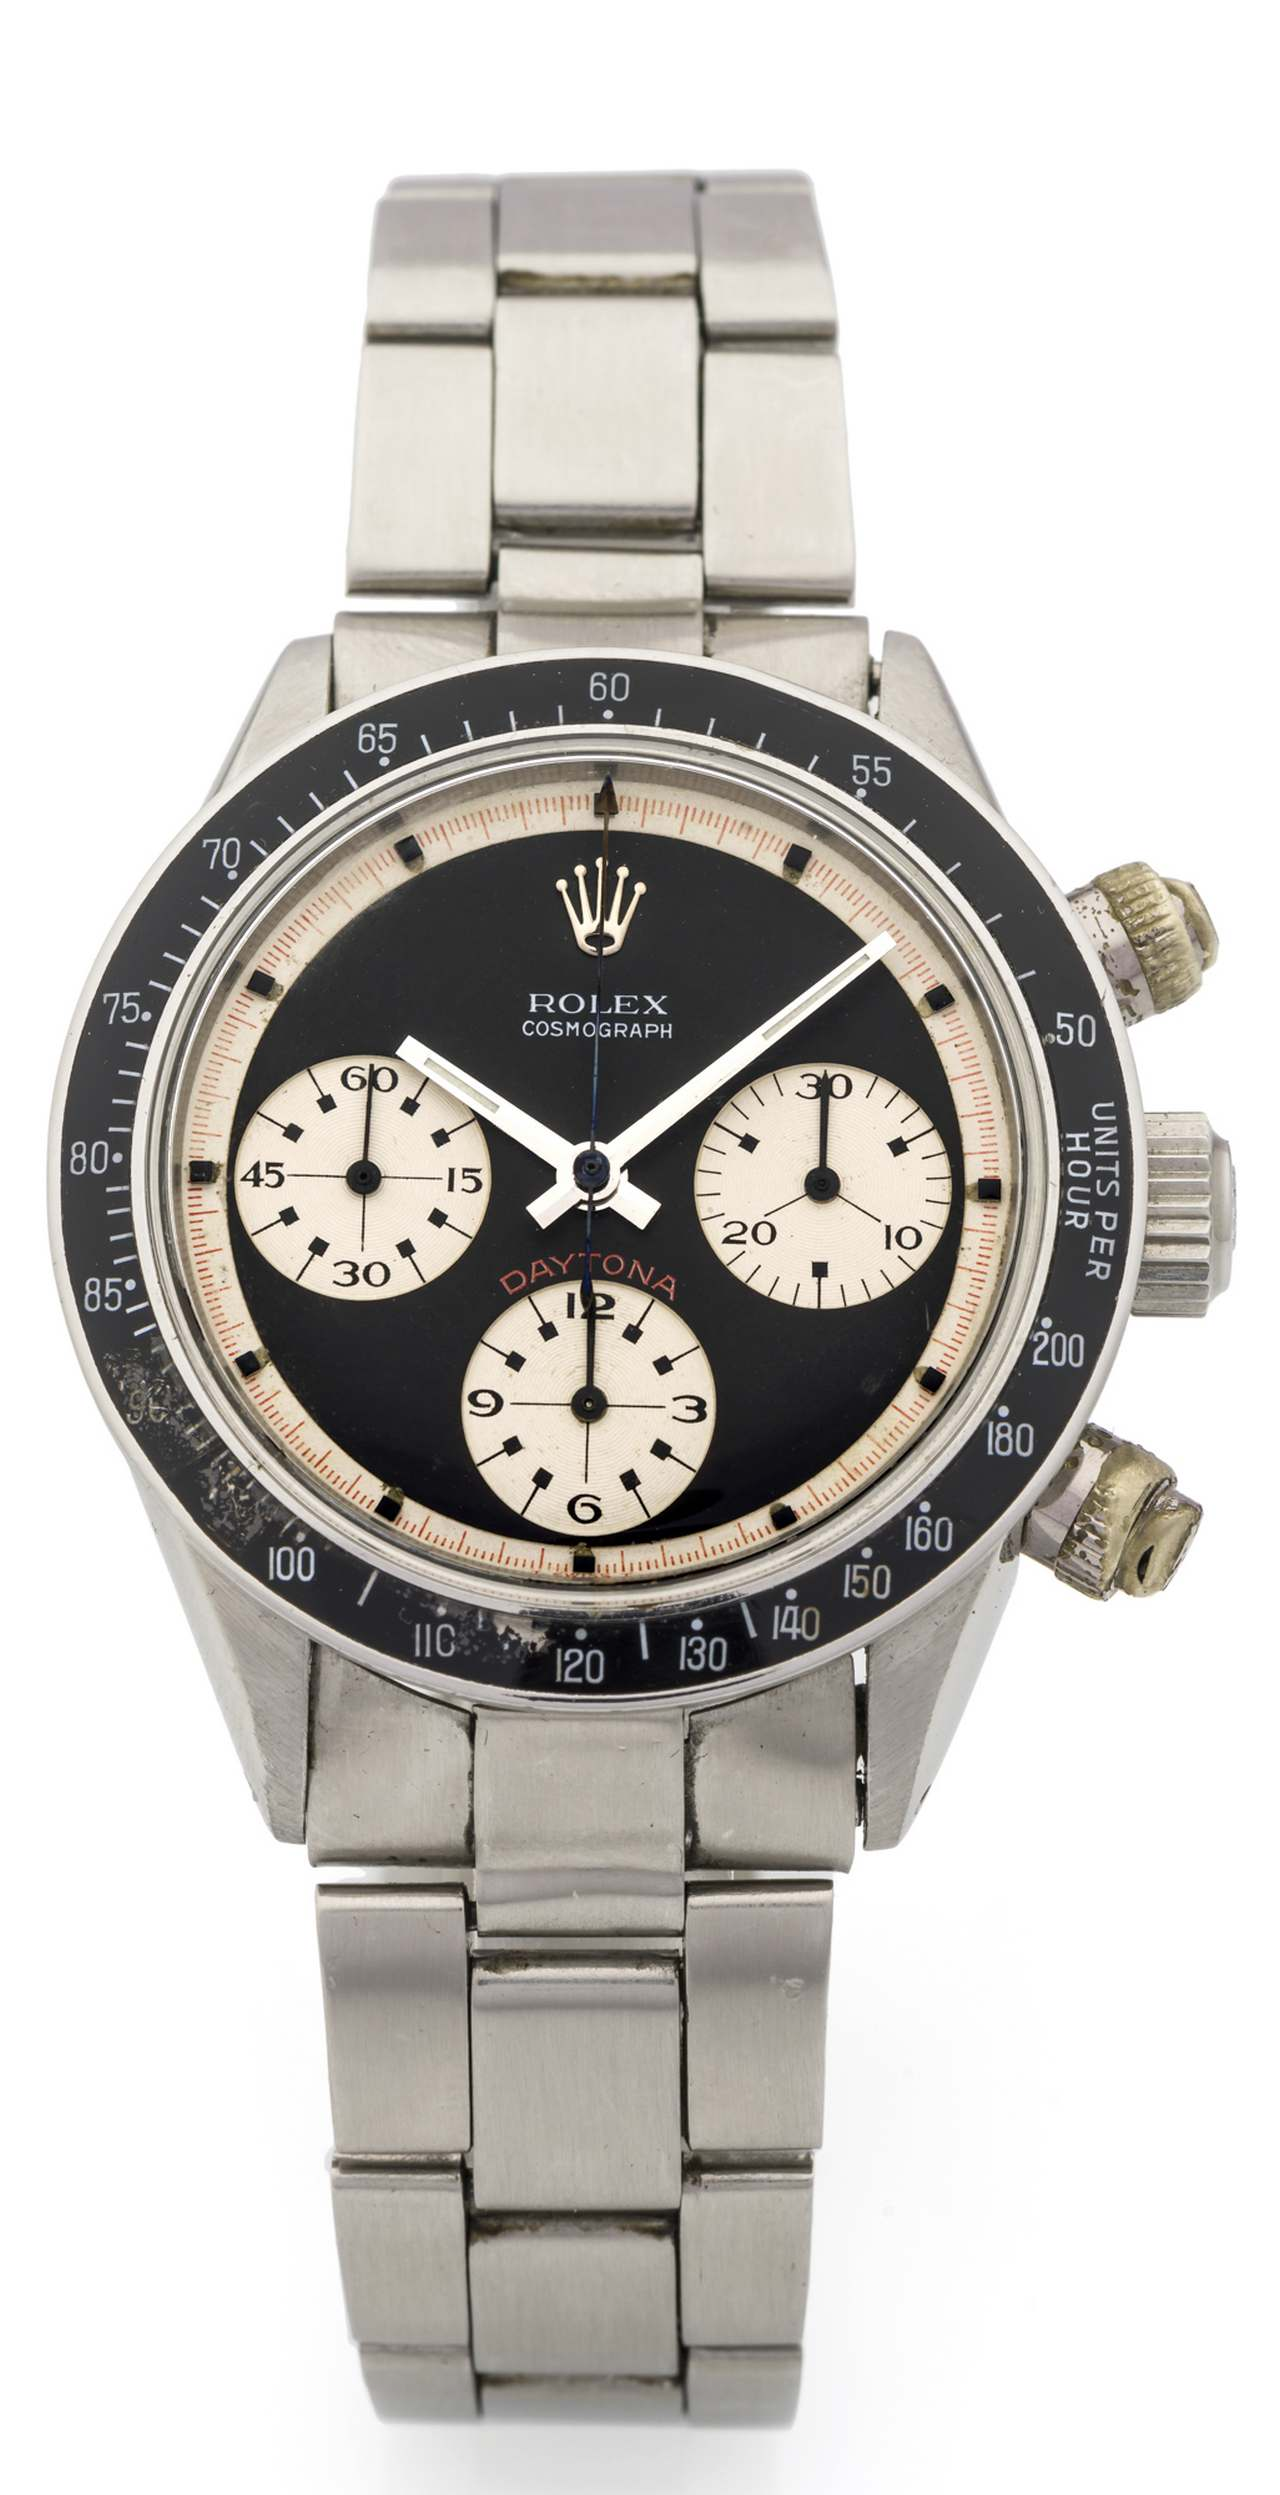 ROLEX, REF. 6240 PAUL NEWMAN COSMOGRAPH DAYTONA STEEL Rolex, Cosmograph, Daytona,case No. 1658192, Ref. 6240.source-antiquorum_0-100